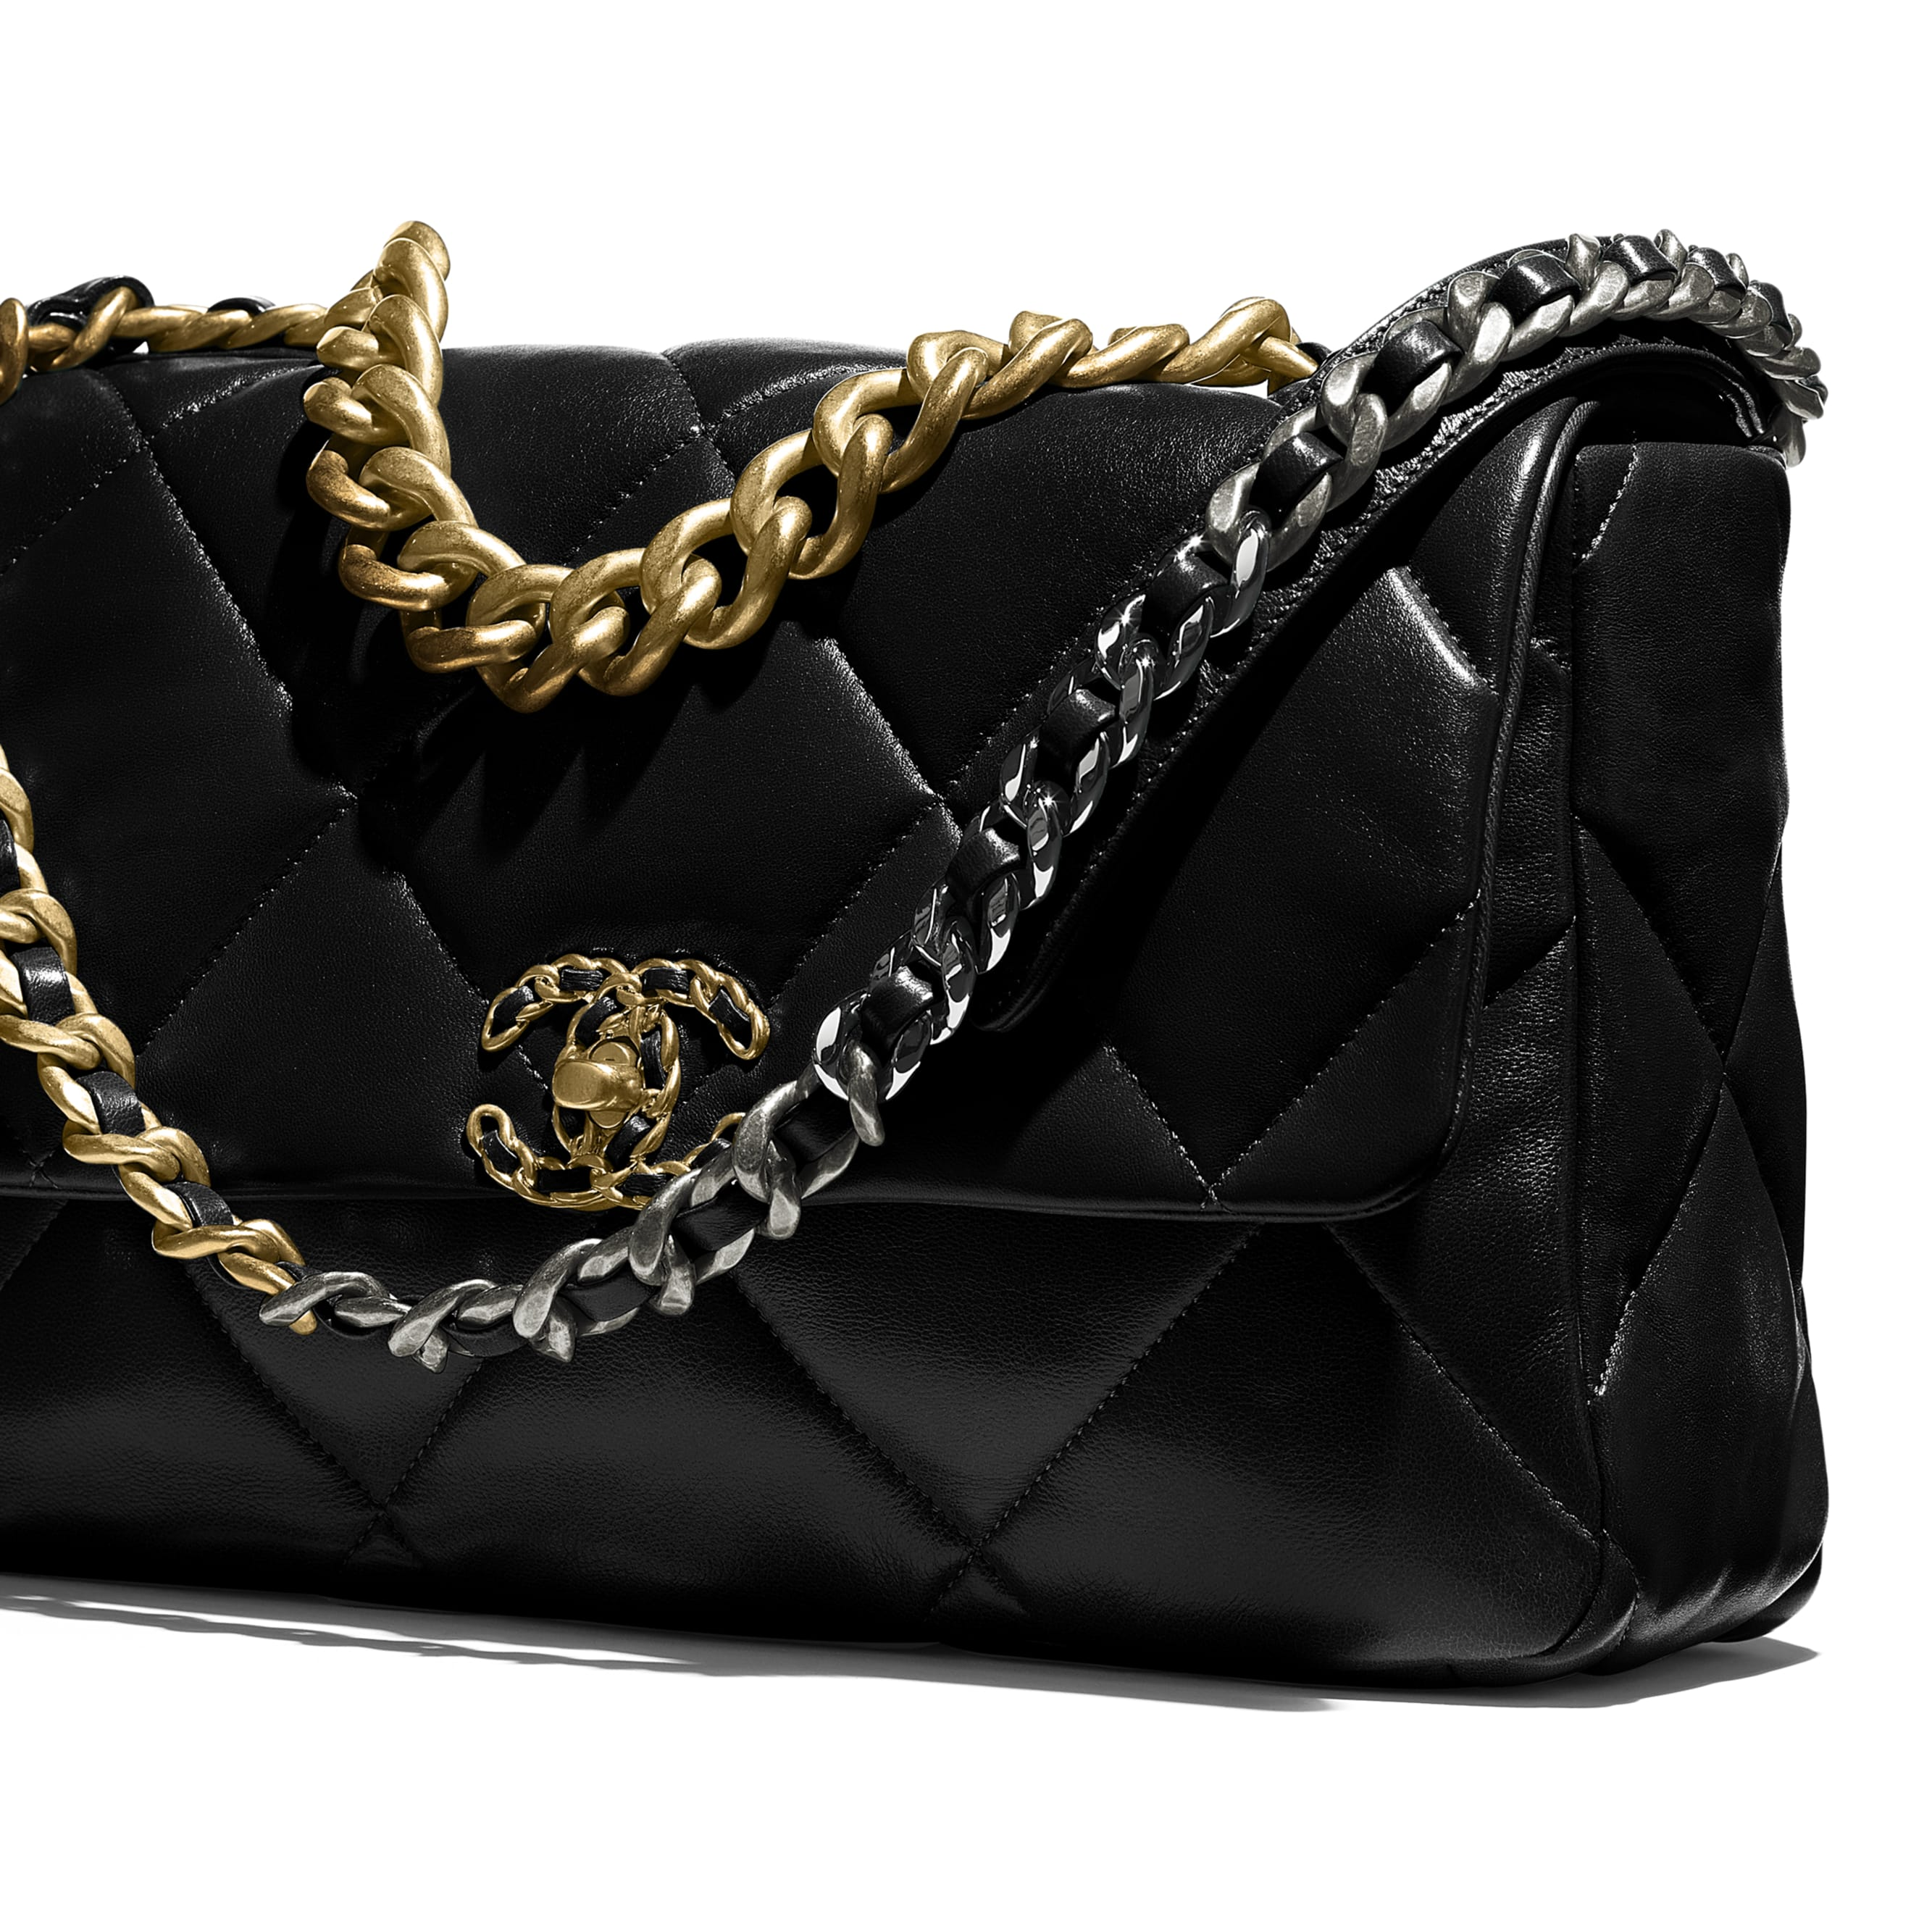 CHANEL 19 Large Handbag - Black - Lambskin, Gold-Tone, Silver-Tone & Ruthenium-Finish Metal - CHANEL - Extra view - see standard sized version